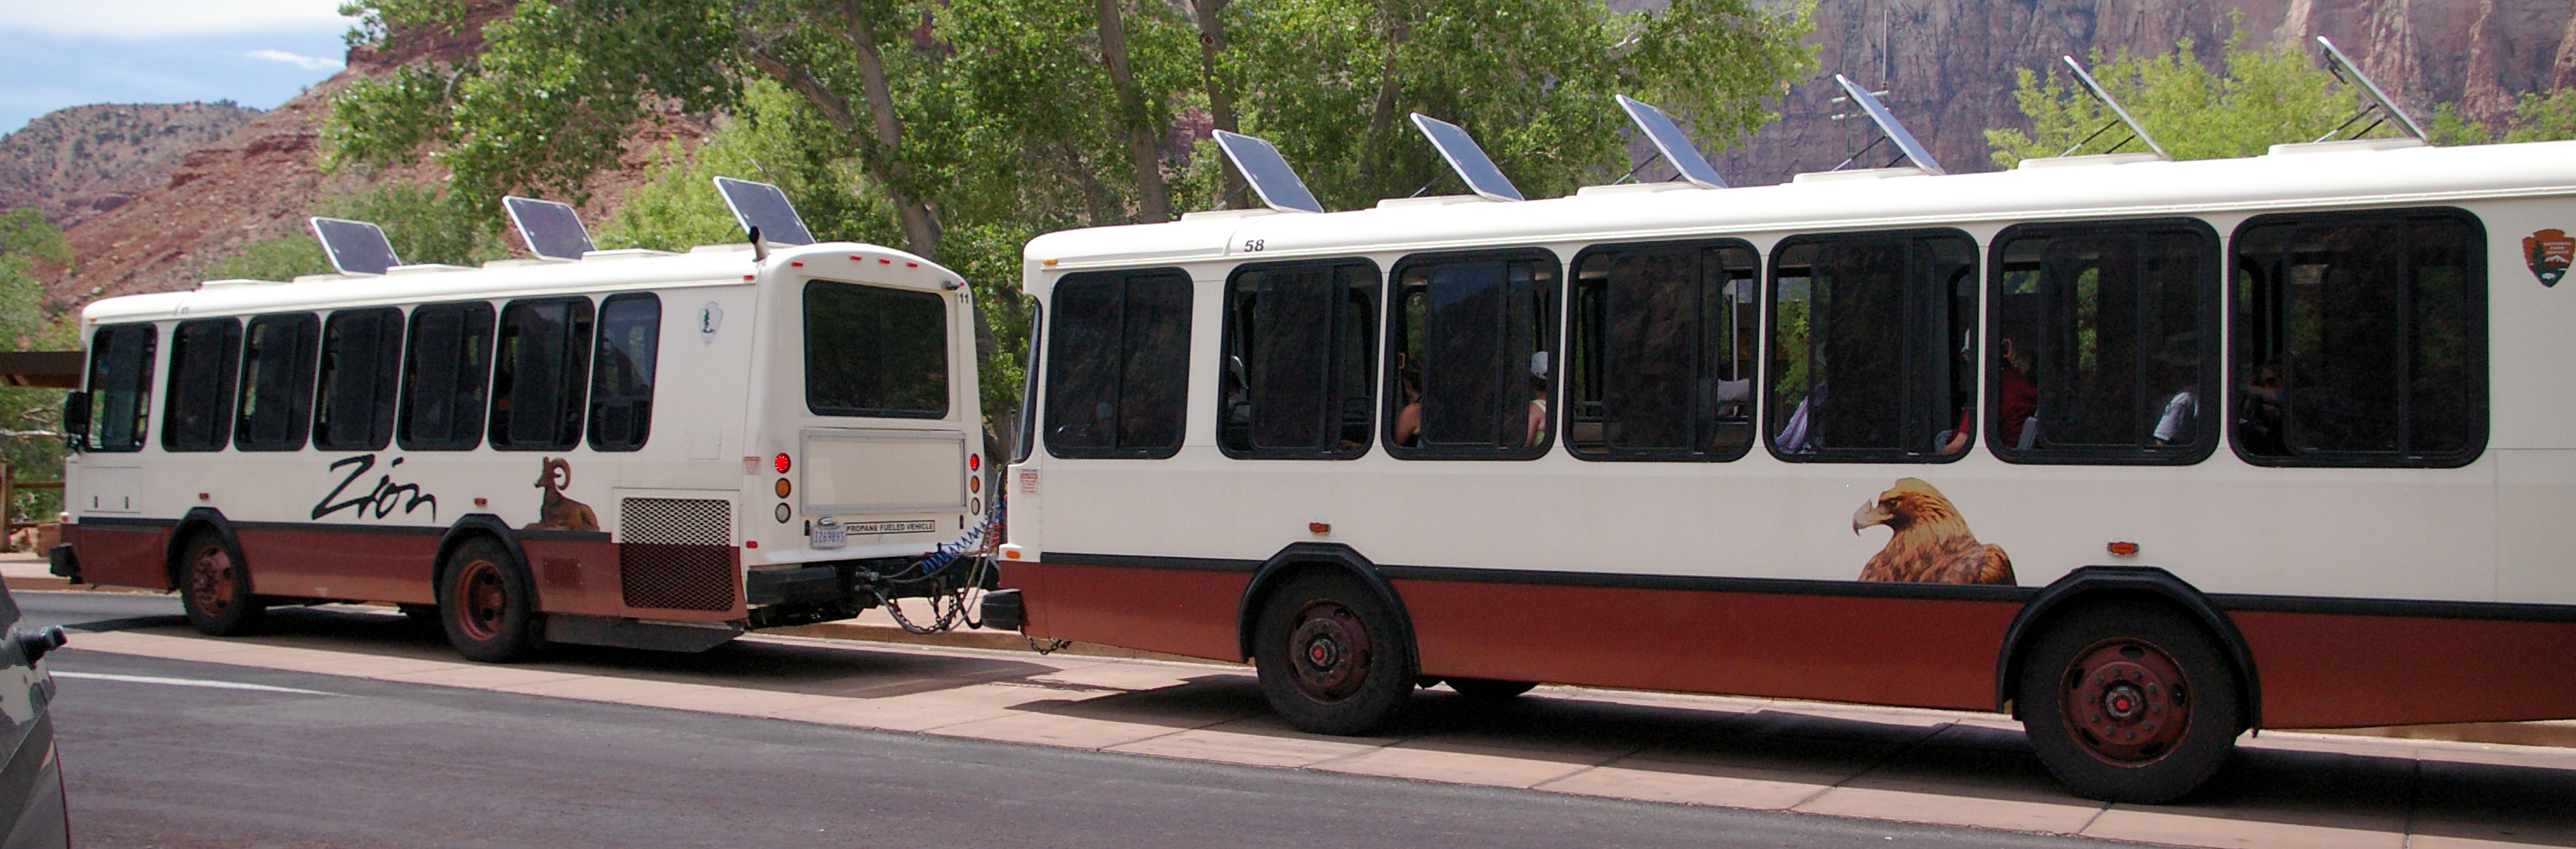 file:zion national park shuttle bus-20070724 - wikimedia commons